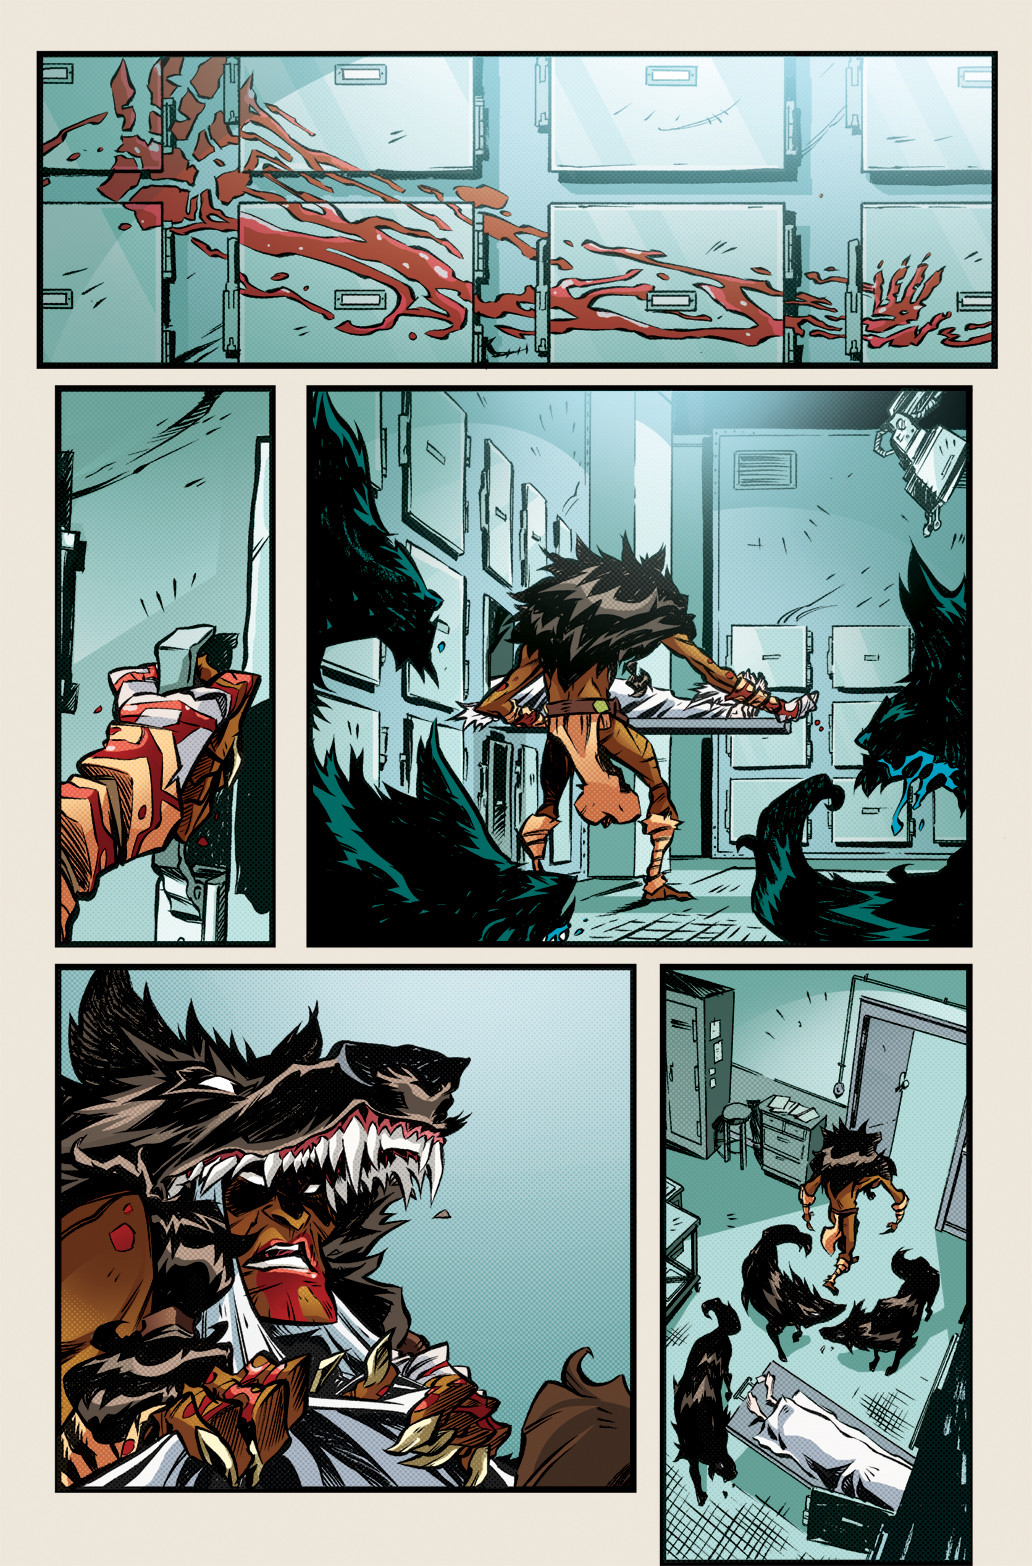 GONERS - #4, page 3